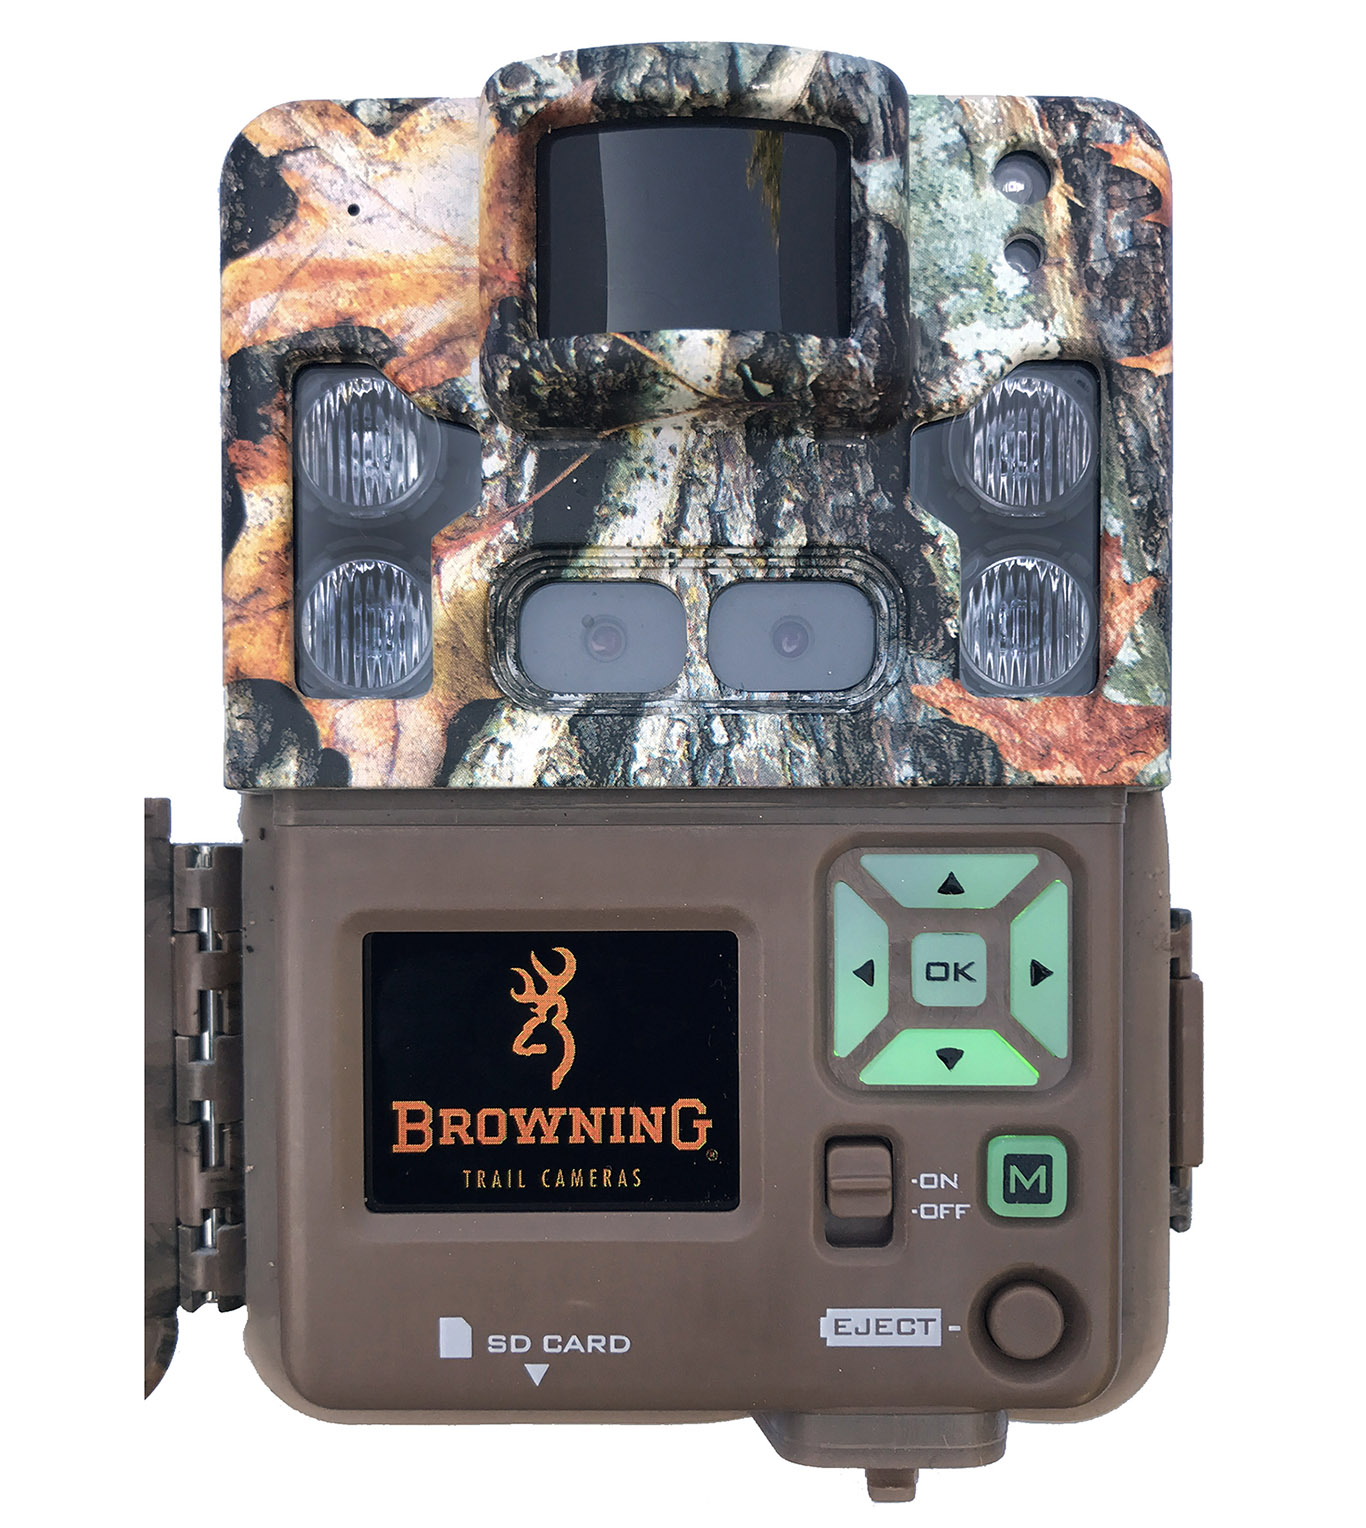 Browning Trail Cameras Strike Force Pro XD Dual Lens